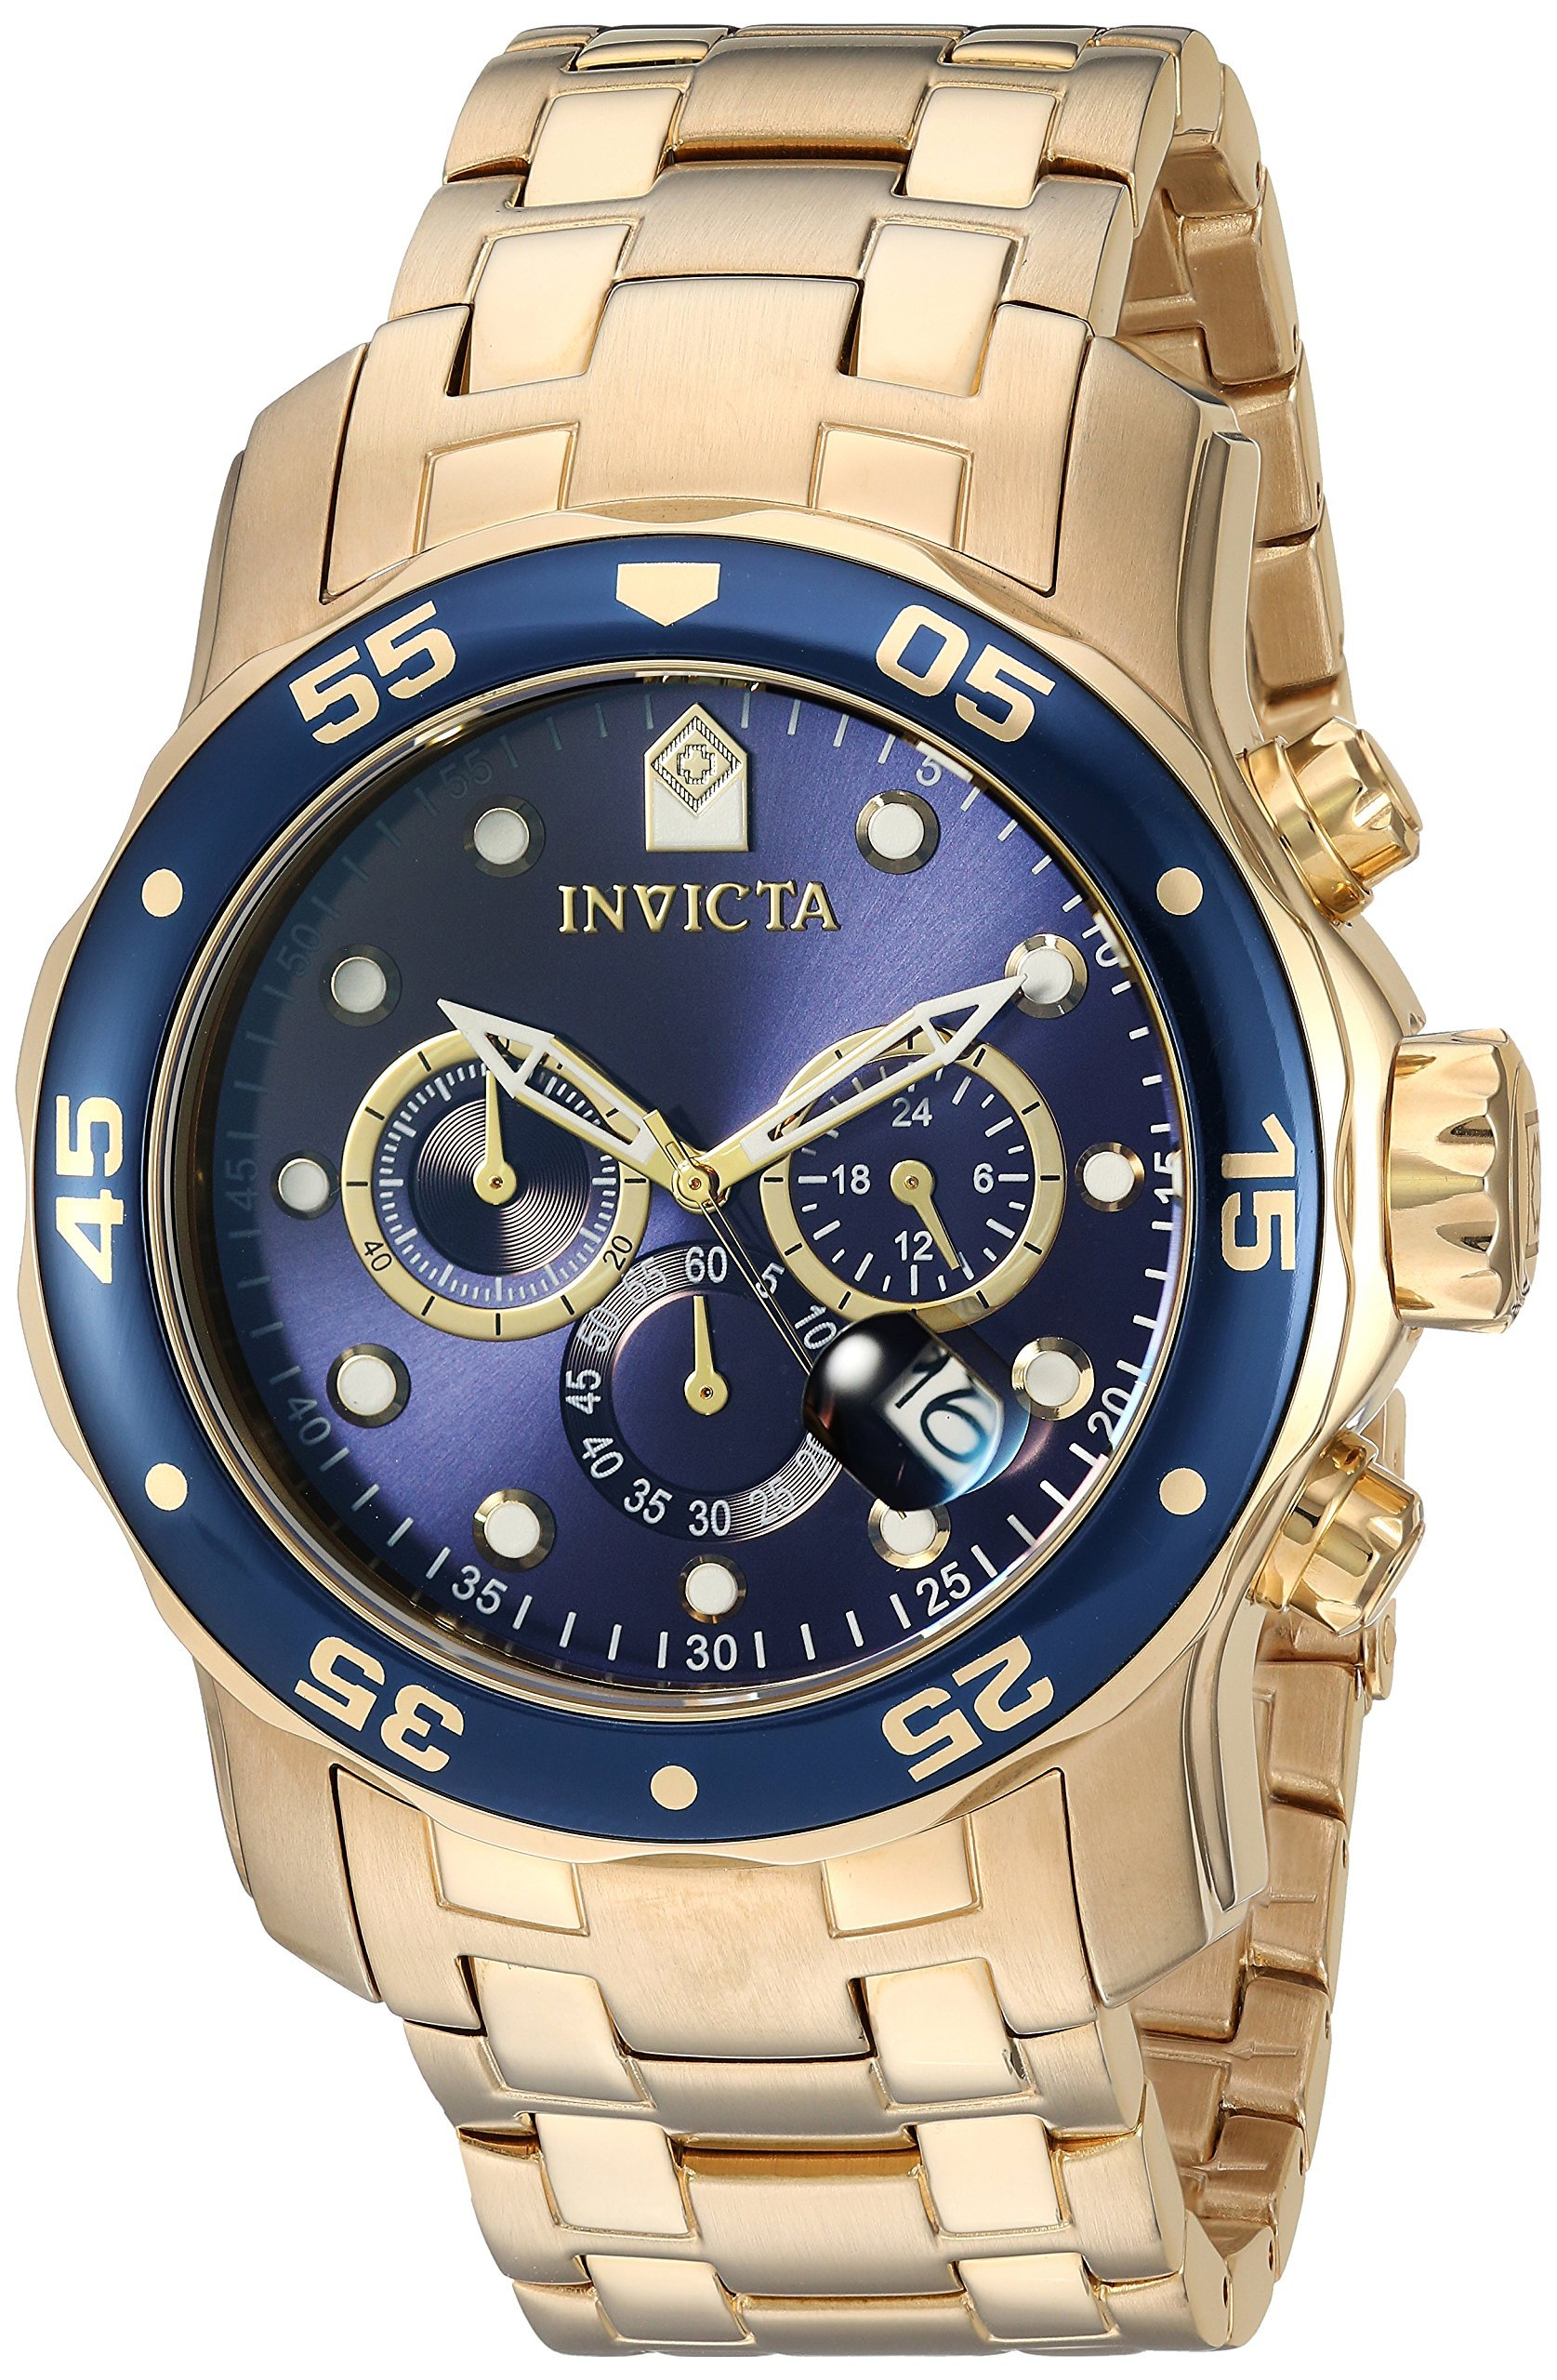 Invicta Men's 0073 Pro Diver Collection Chronograph 18k Gold-Plated Watch with Link Bracelet